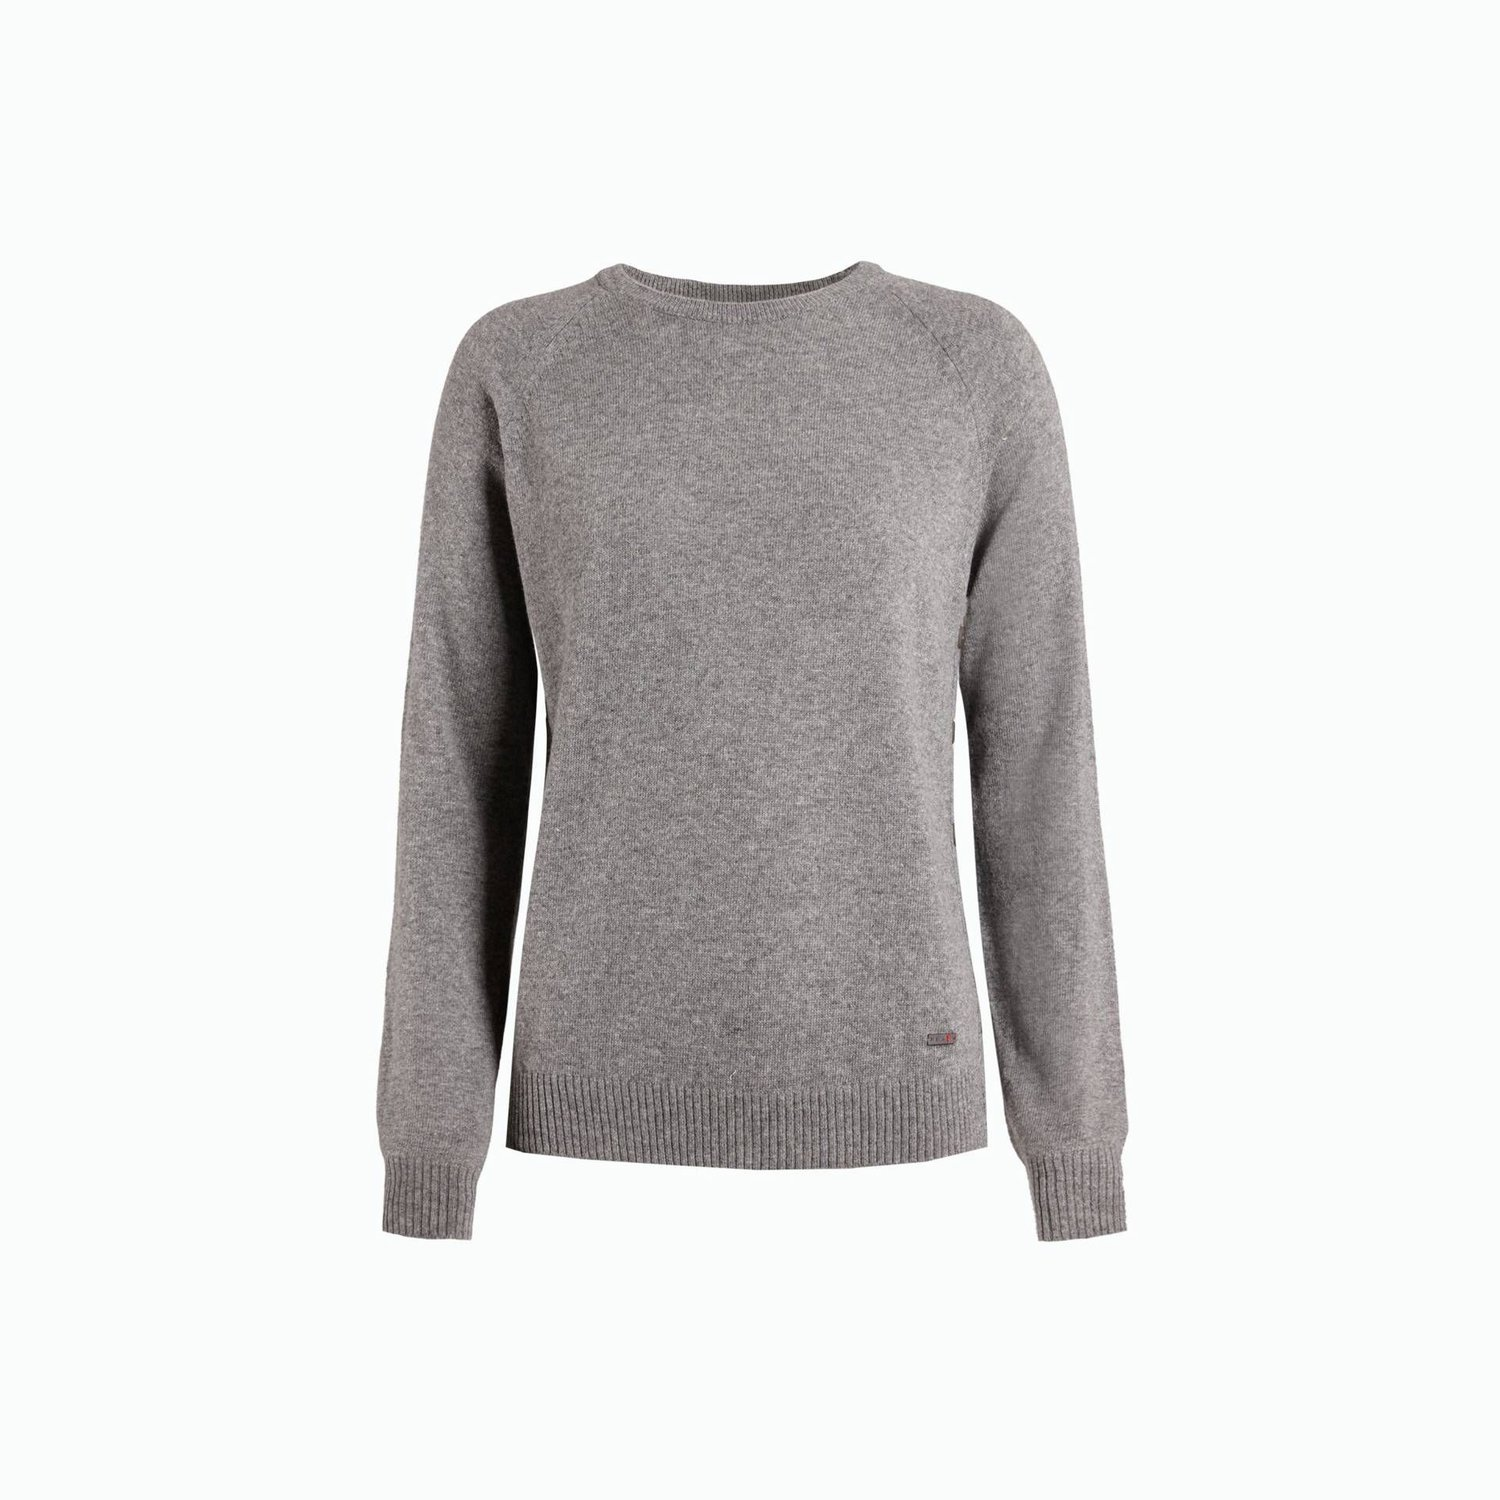 B118 Jumper - Grey Melange